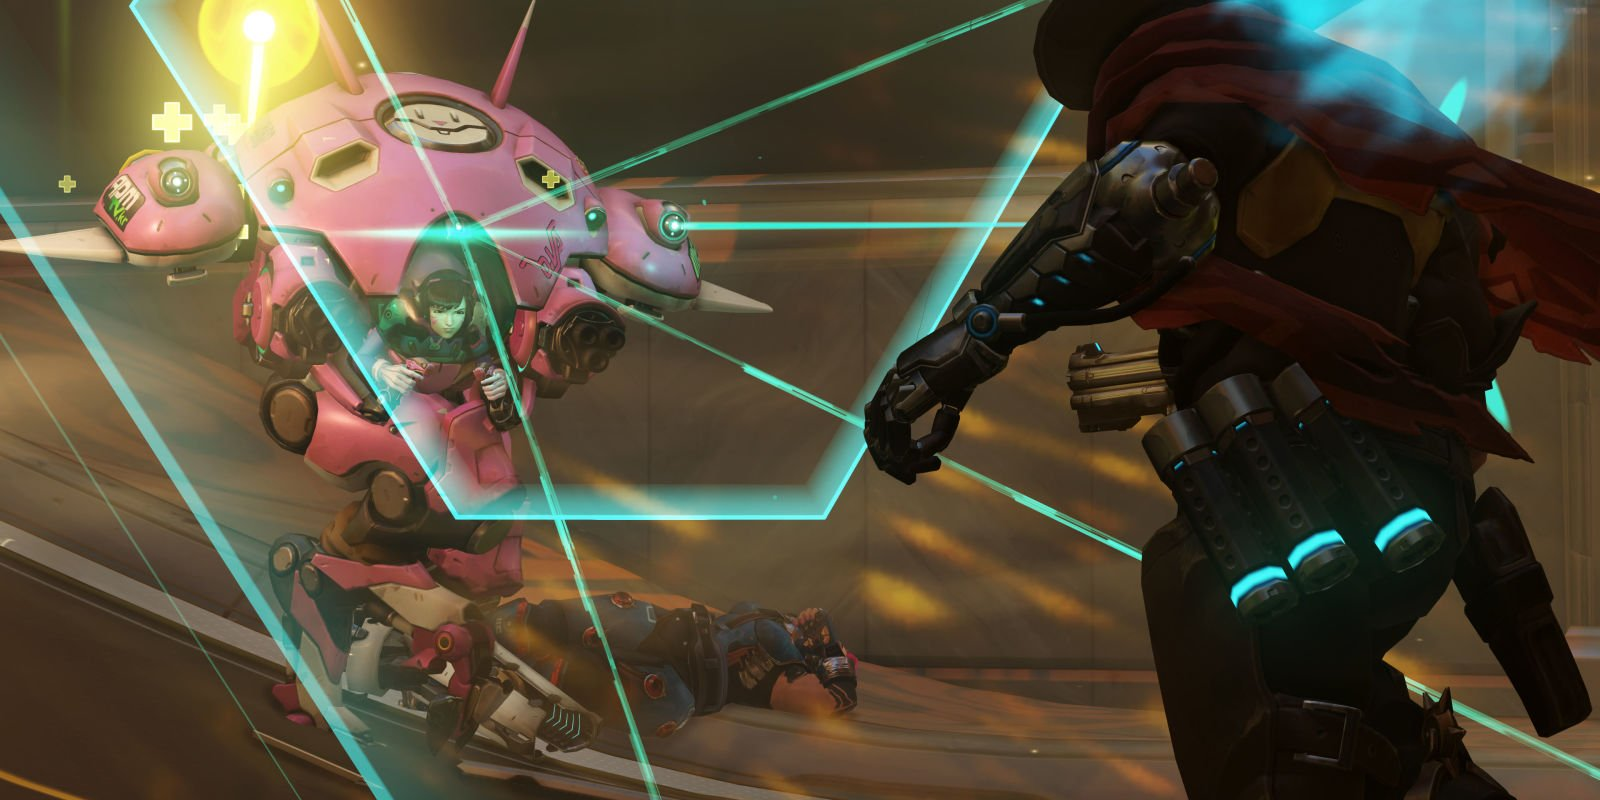 FIFA 18 and Overwatch have had their loot boxes criminalised for promoting gambling